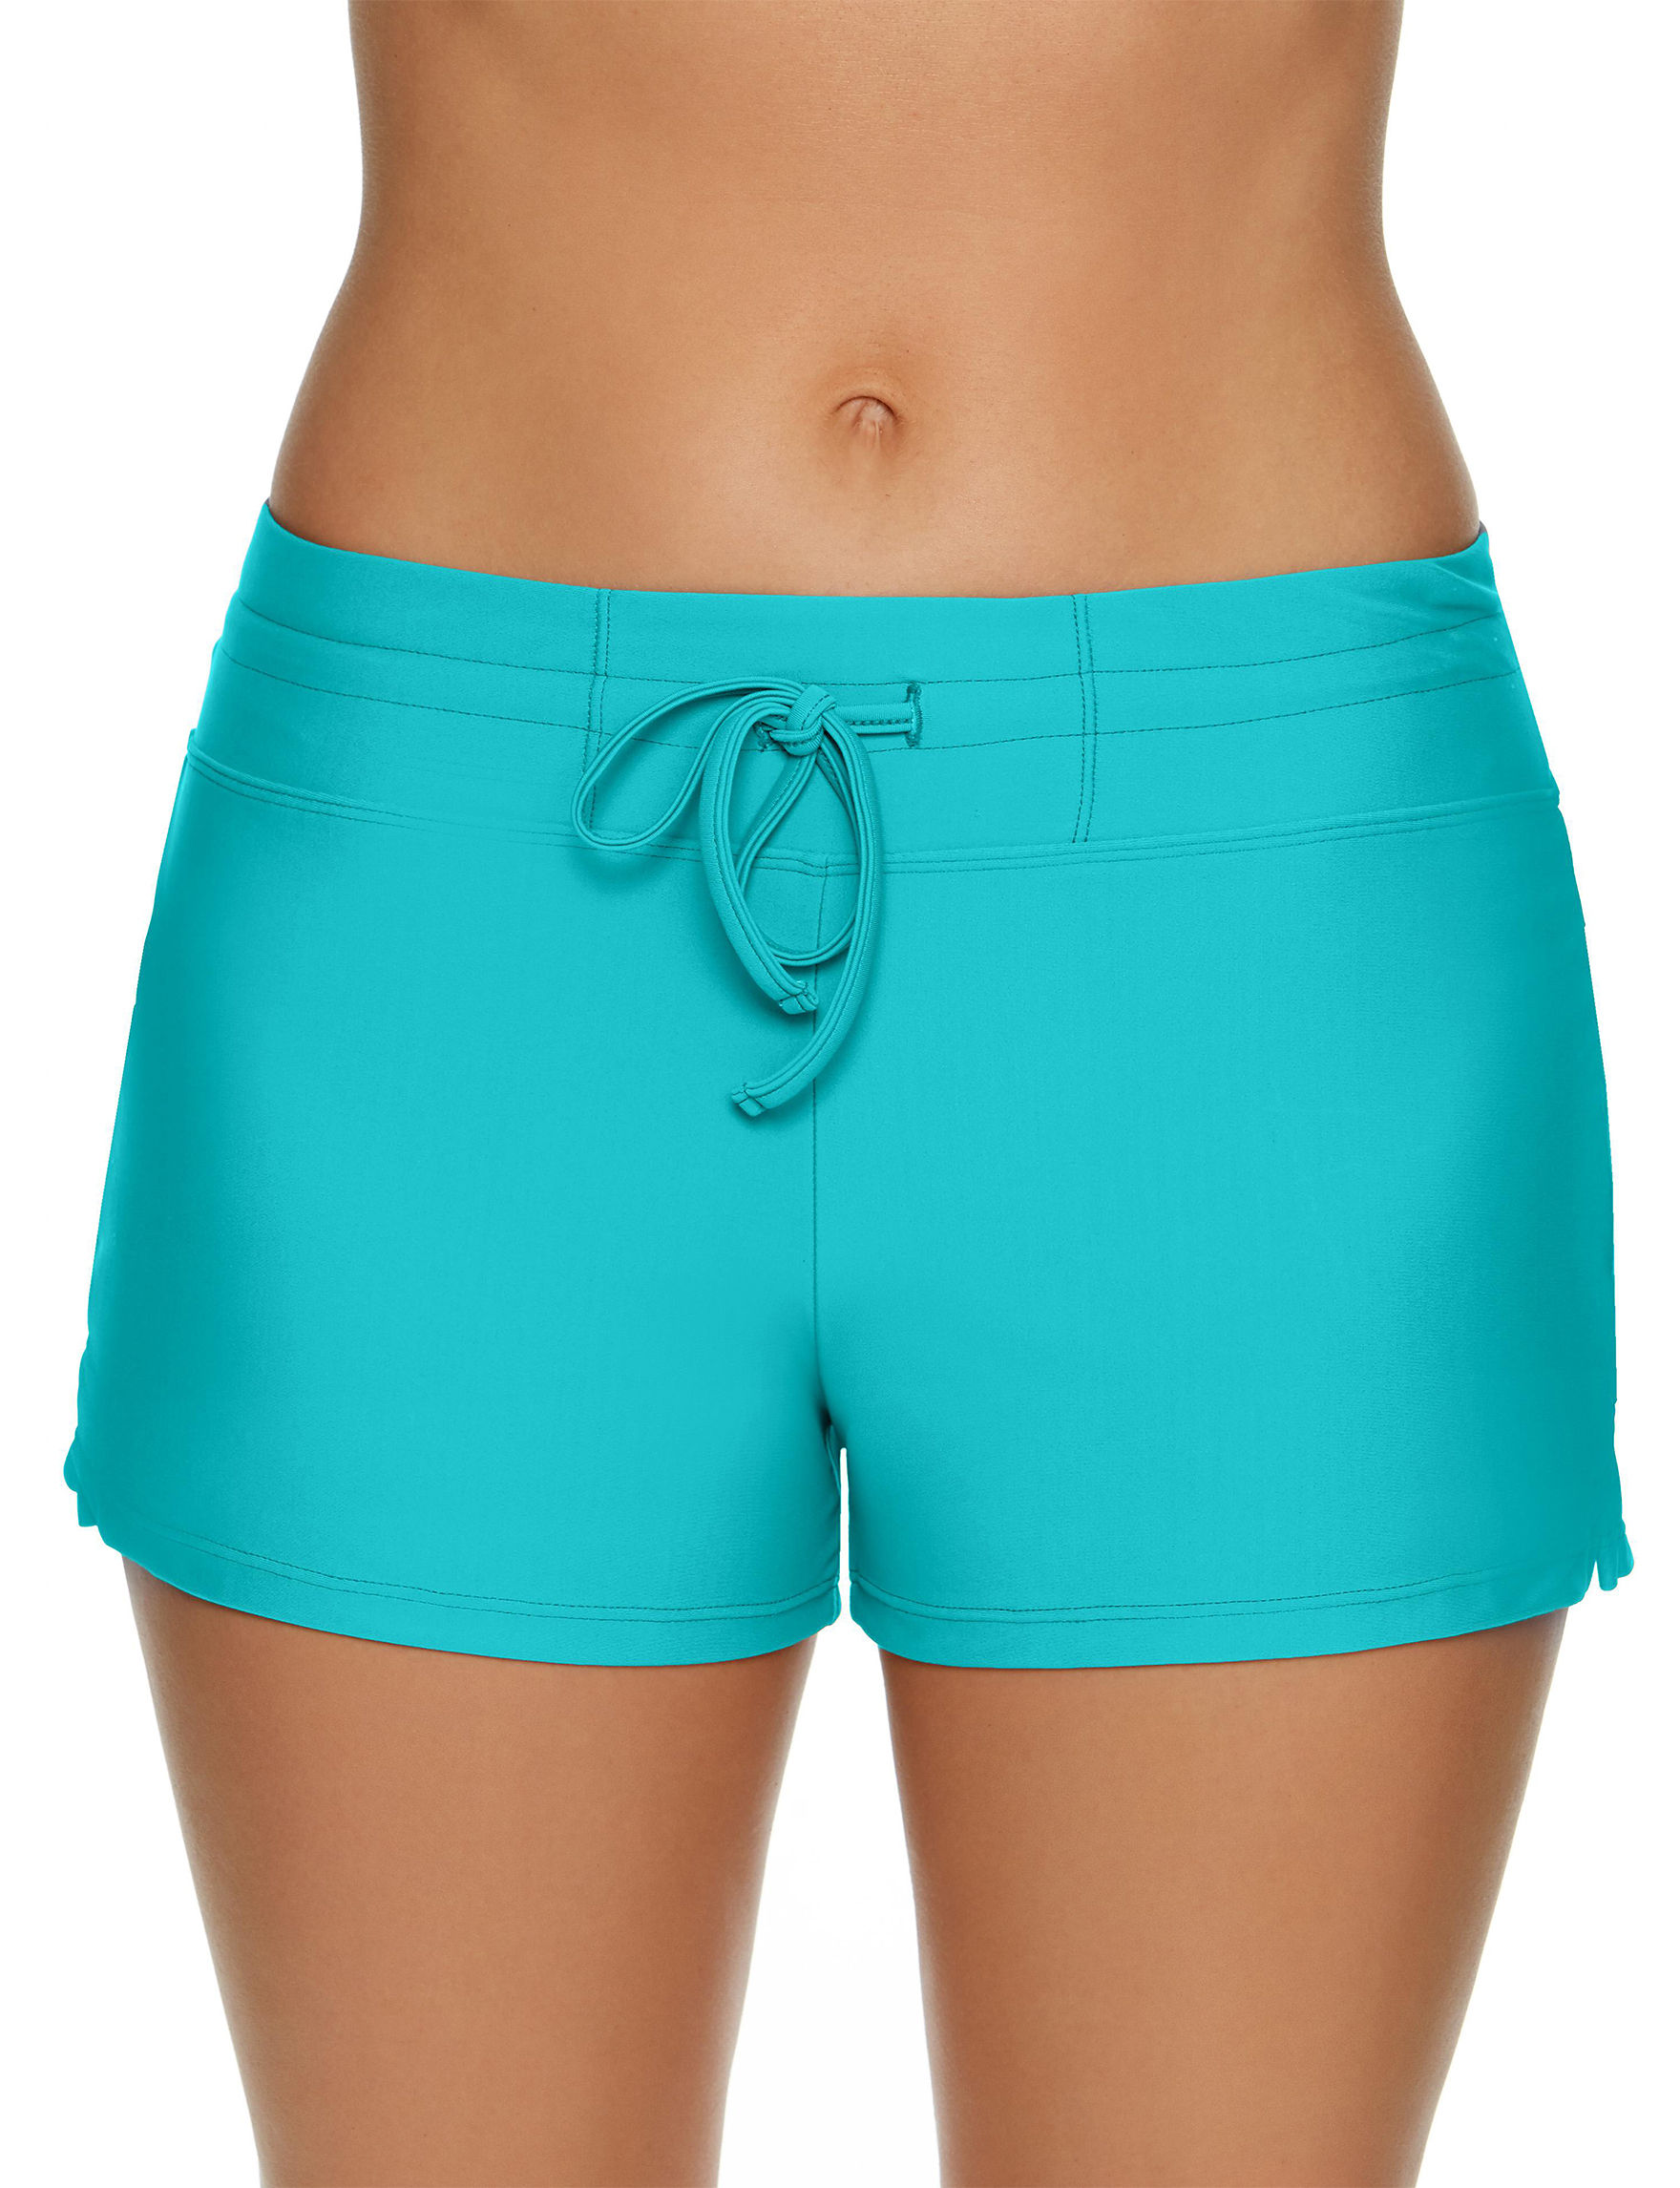 Splashletics Teal Blue Swimsuit Bottoms Boyshort